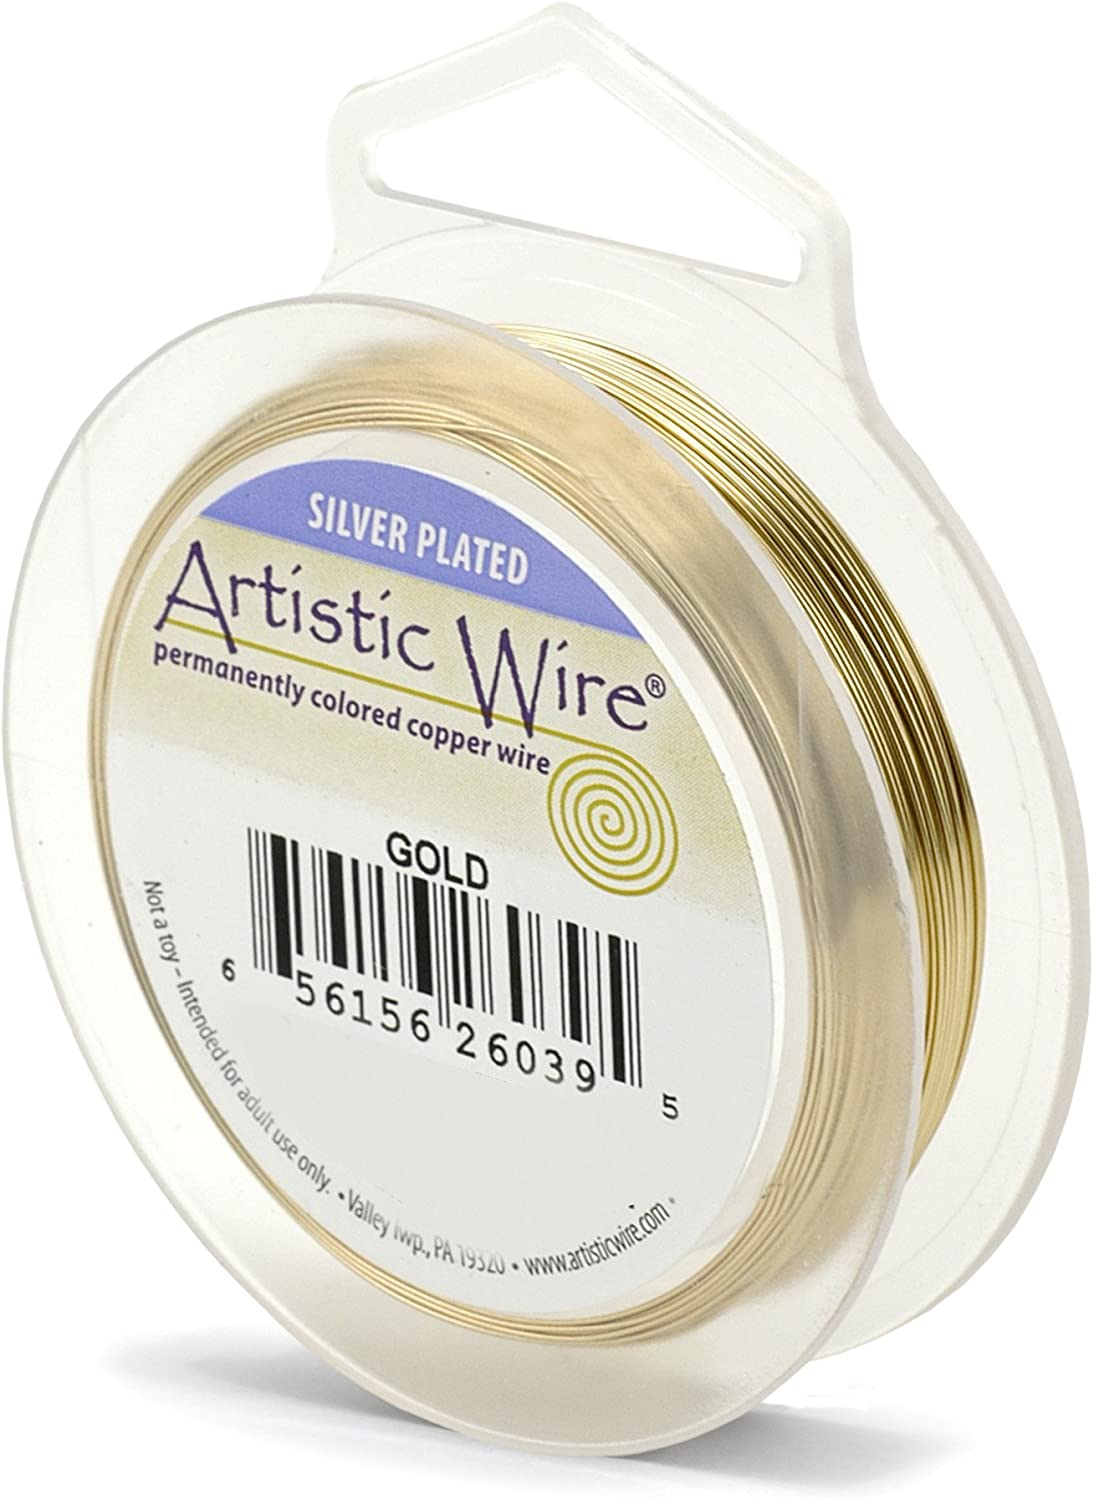 10-Yard Artistic Wire 22S Gauge Wire Gold Color